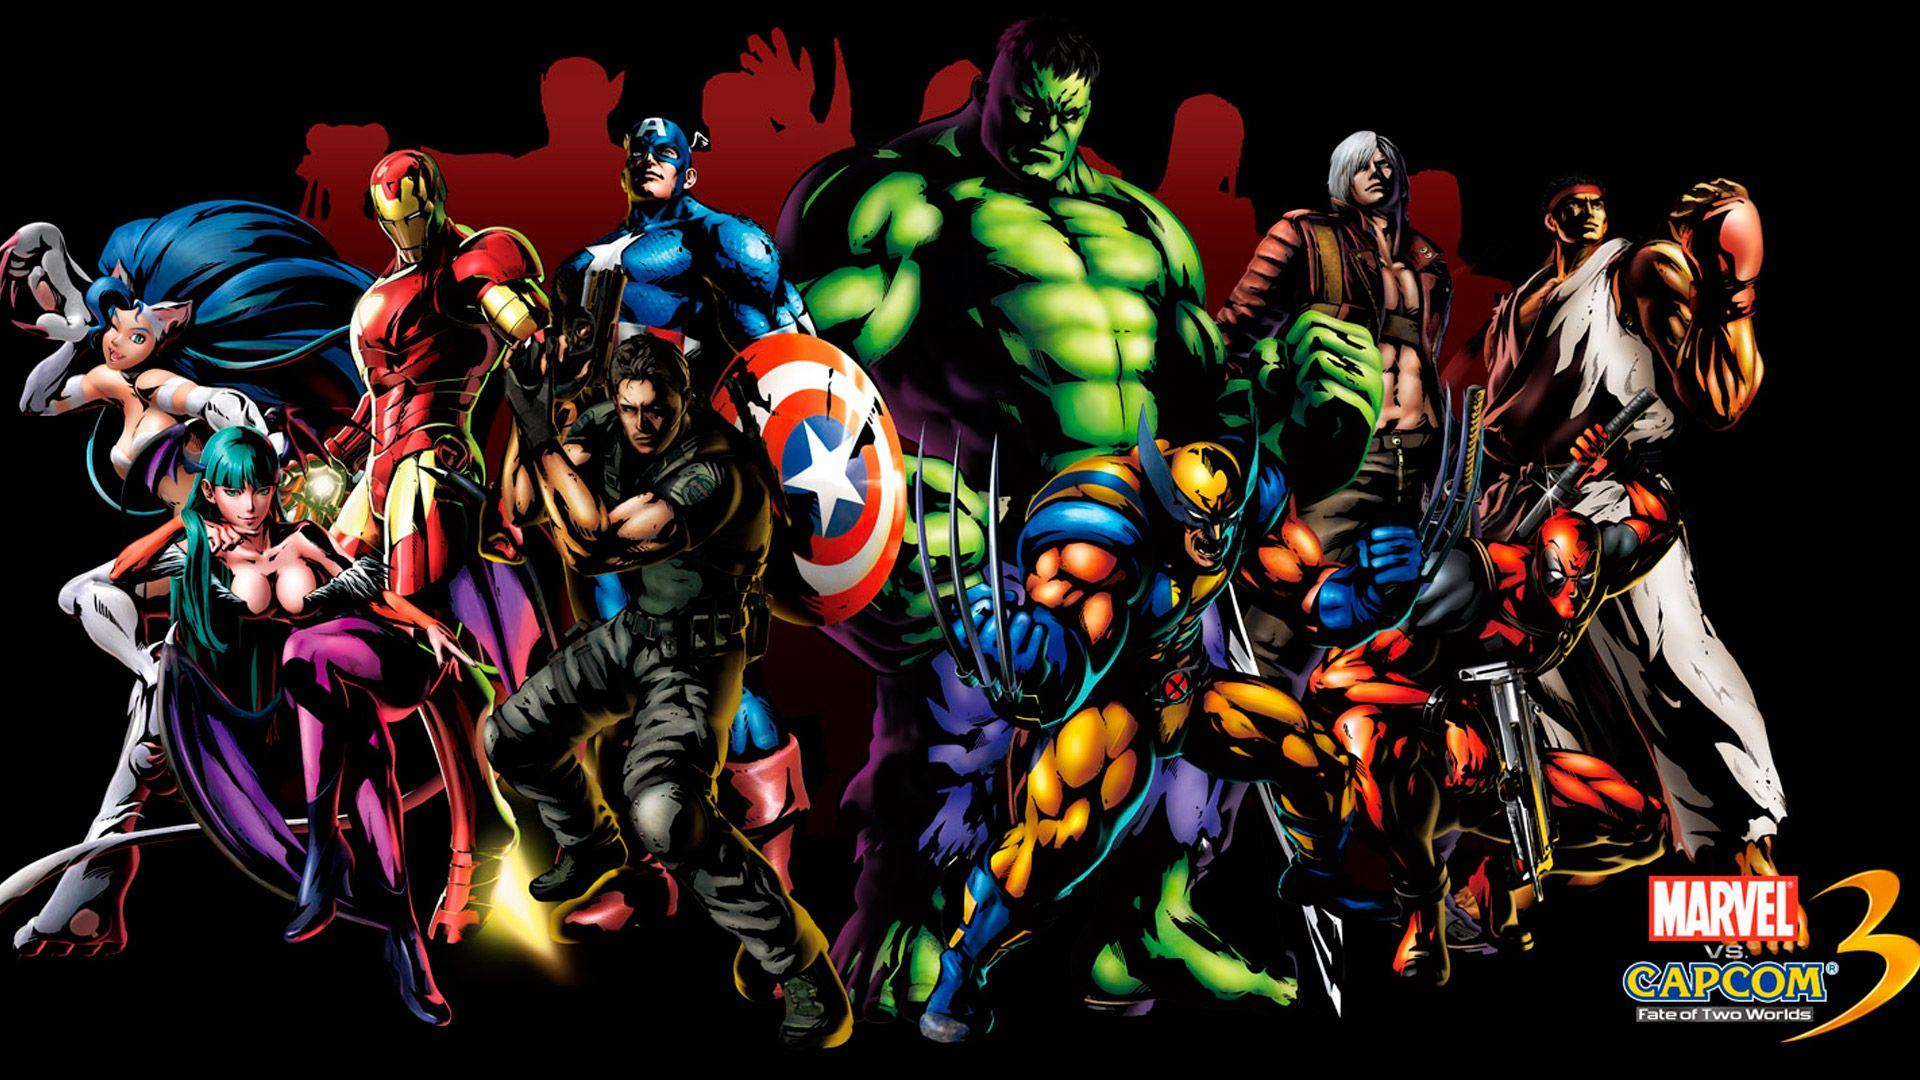 Marvel Cartoon Wallpapers Group